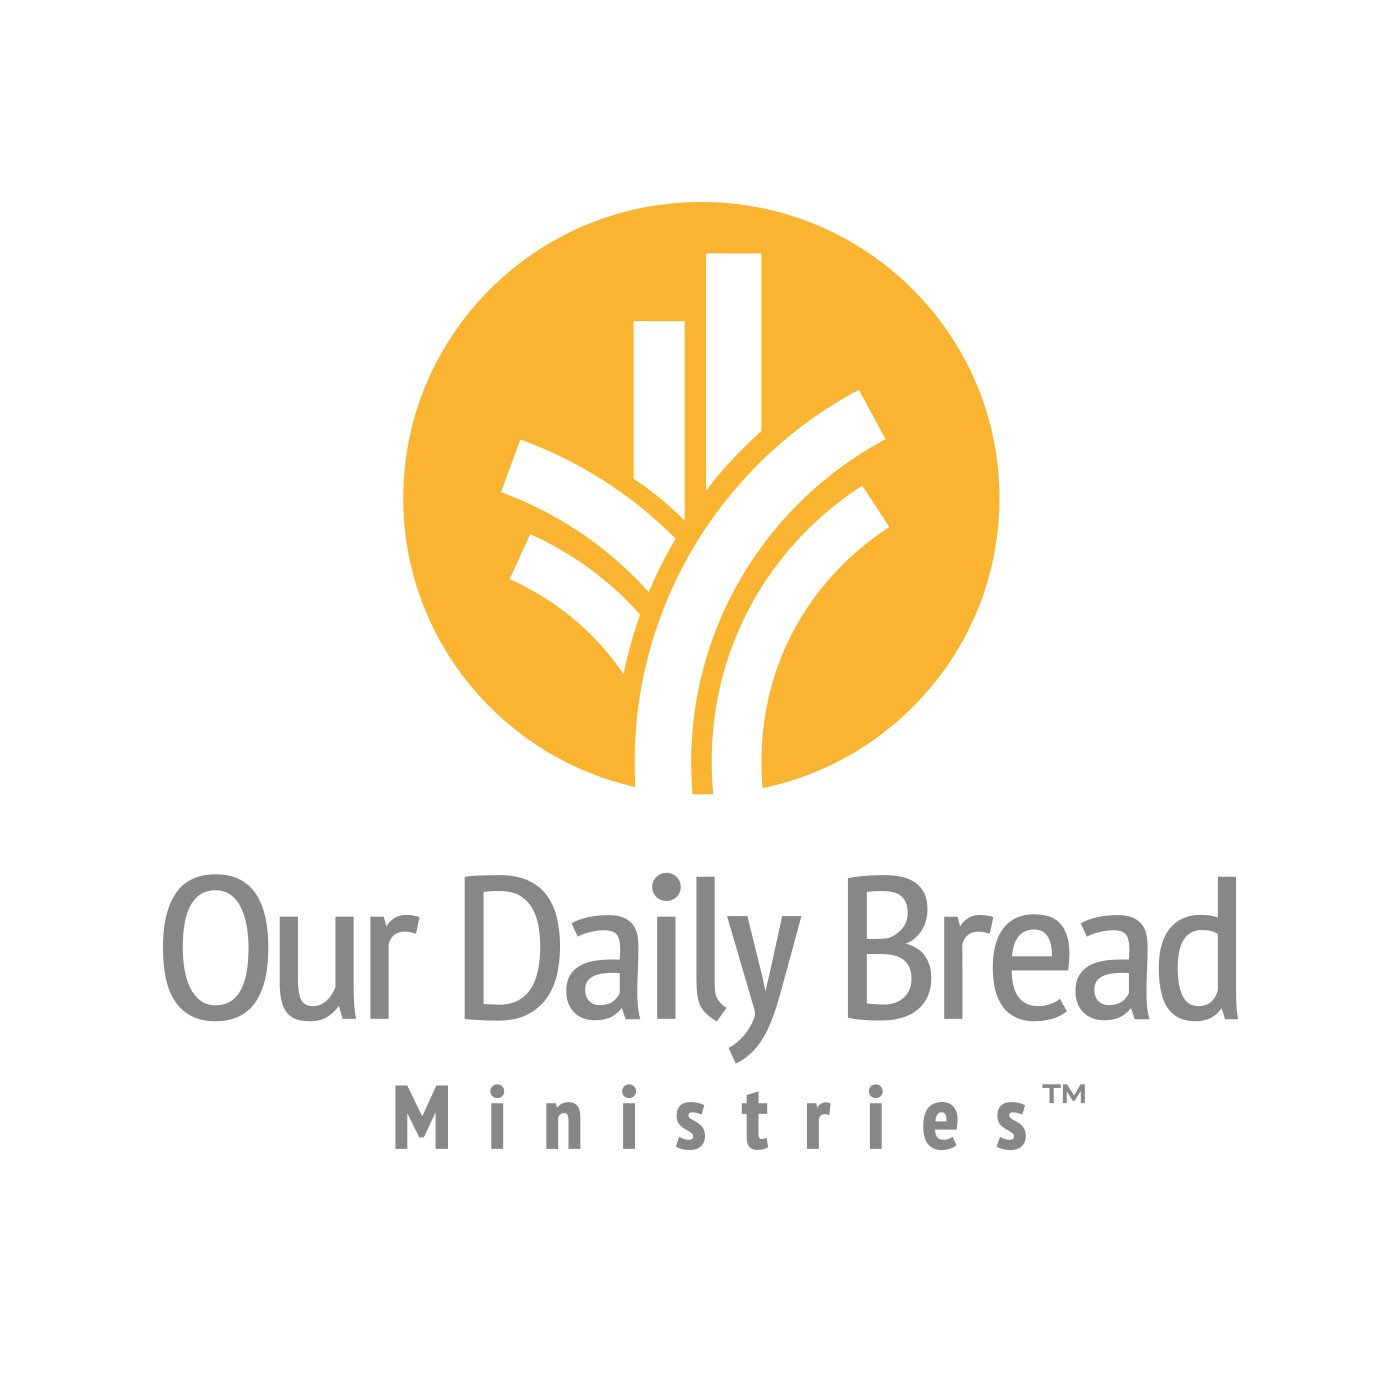 Our Daily Bread 5 September 2019, Our Daily Bread 5 September 2019 Devotional – The Last Word